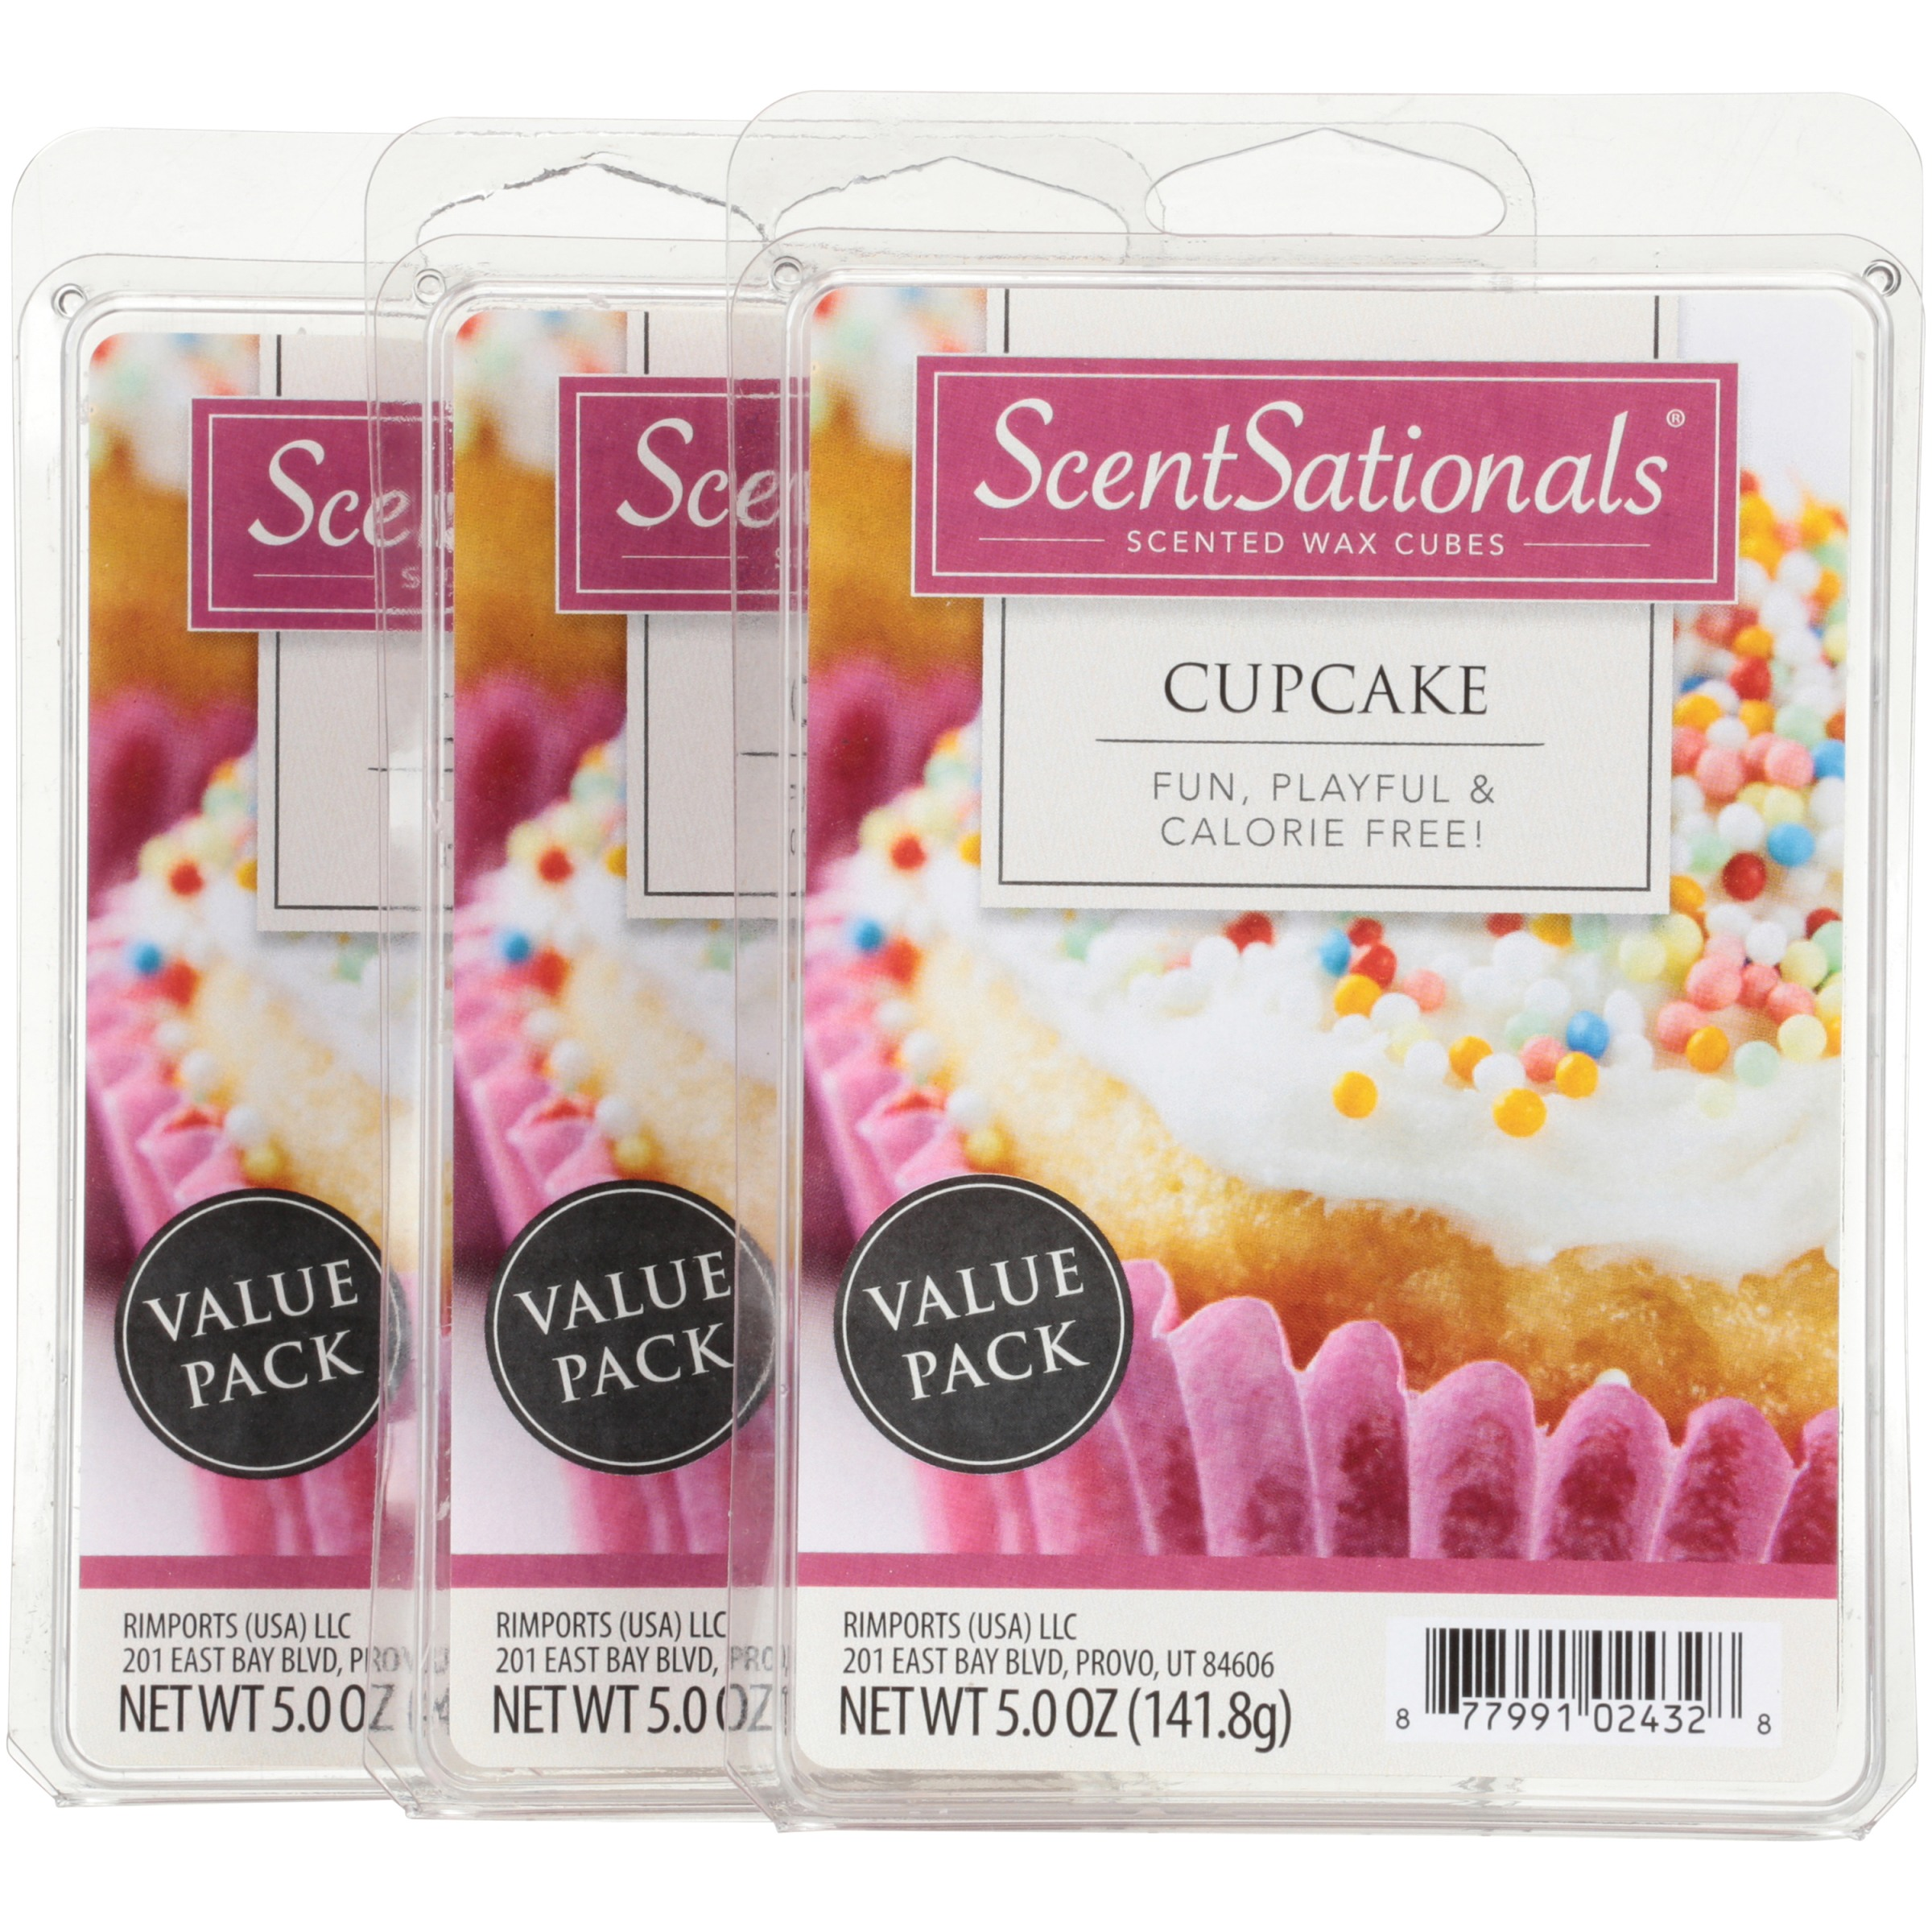 ScentSationals® Cupcake Scented Wax Cubes Value Pack 12 ct Pack